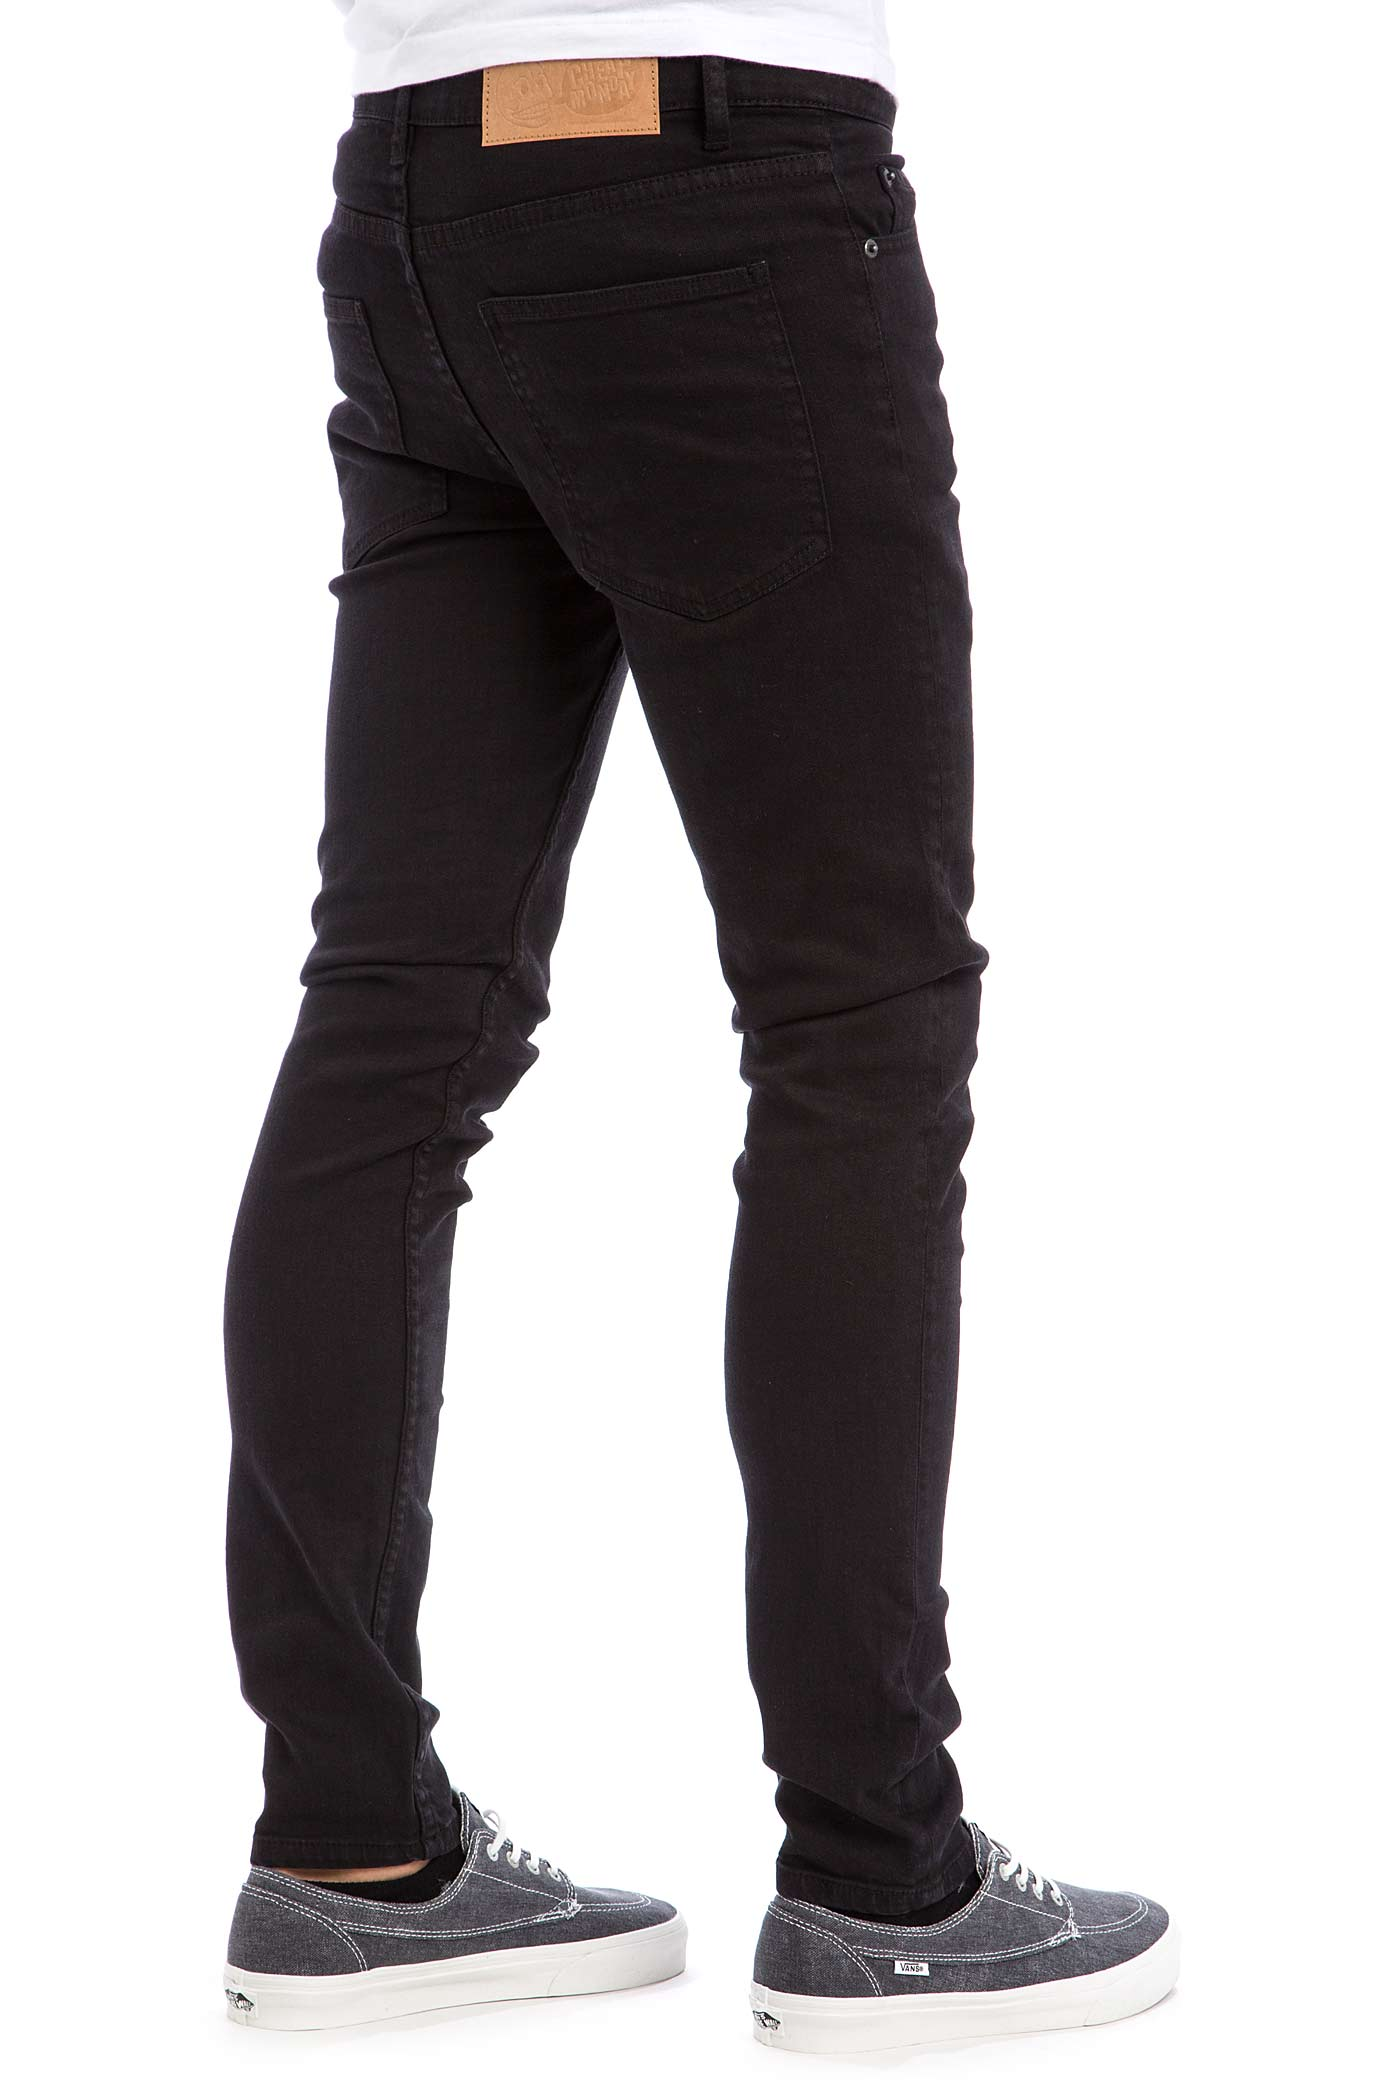 cheap monday tight jeans new black buy at skatedeluxe. Black Bedroom Furniture Sets. Home Design Ideas